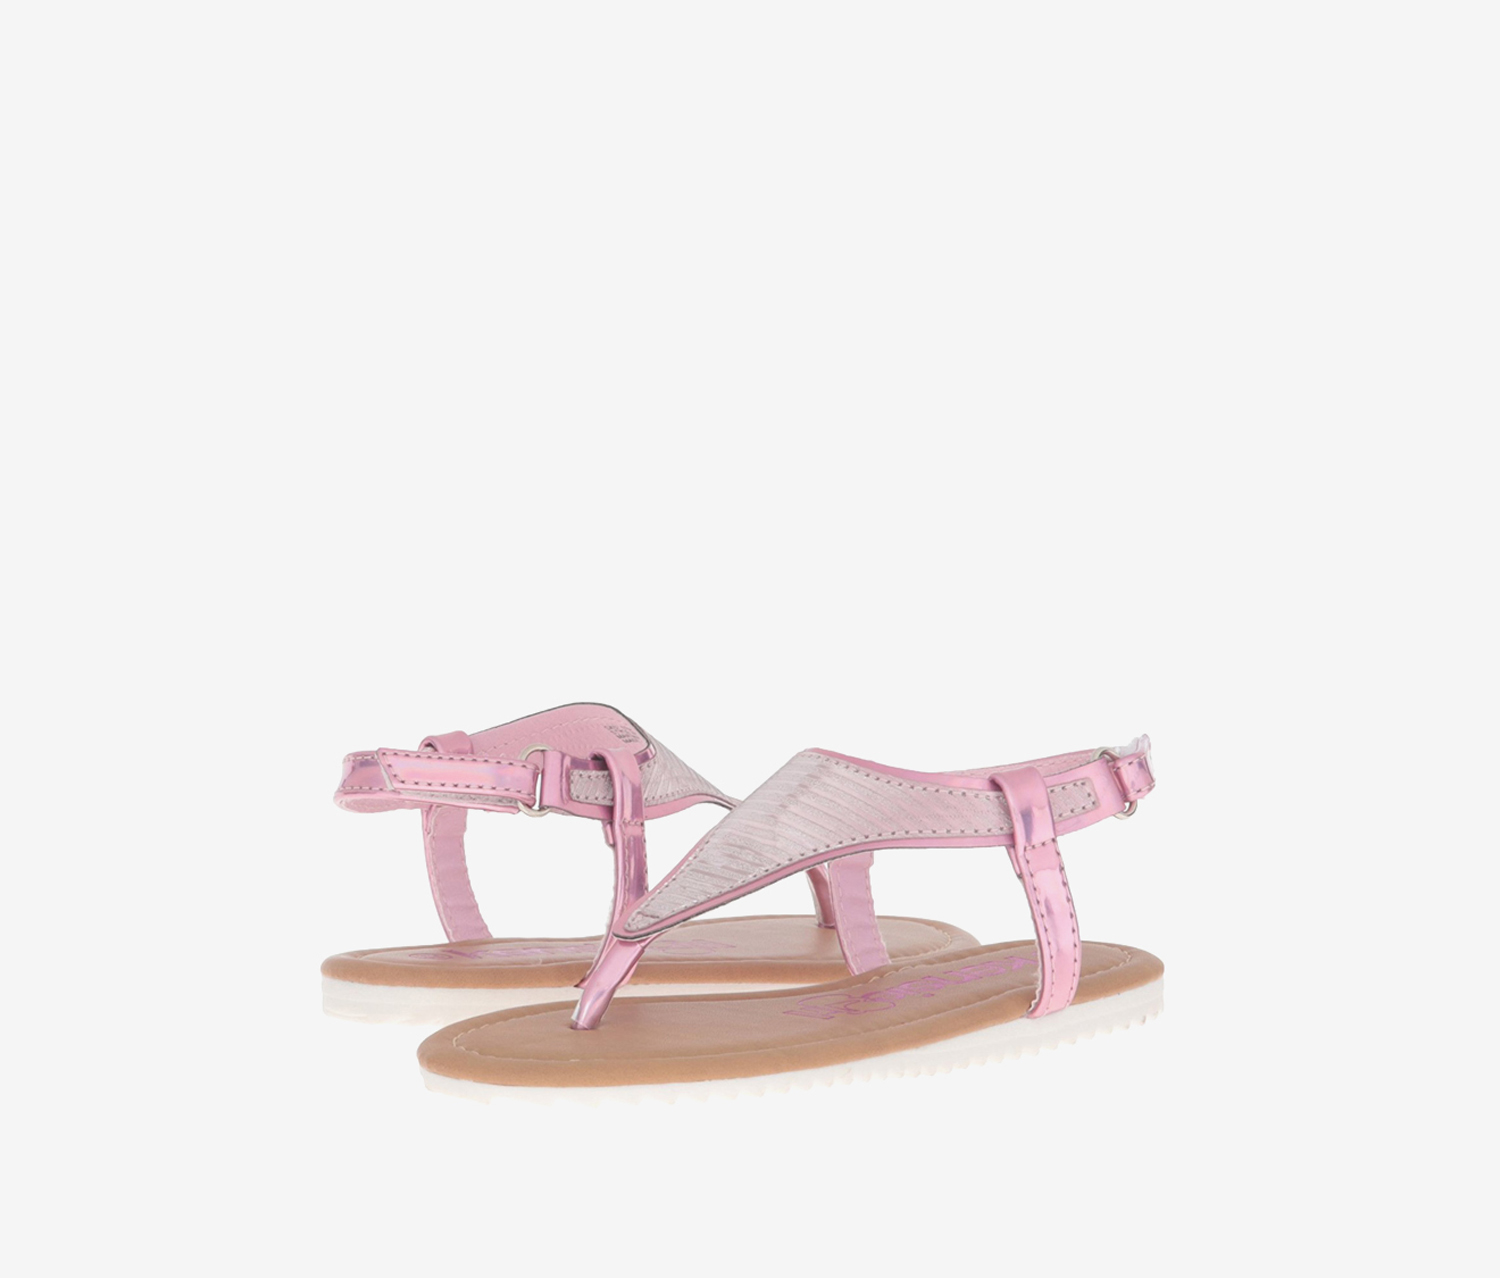 Kensie Girl Little Kids Thong Sandals, Pink Metallic